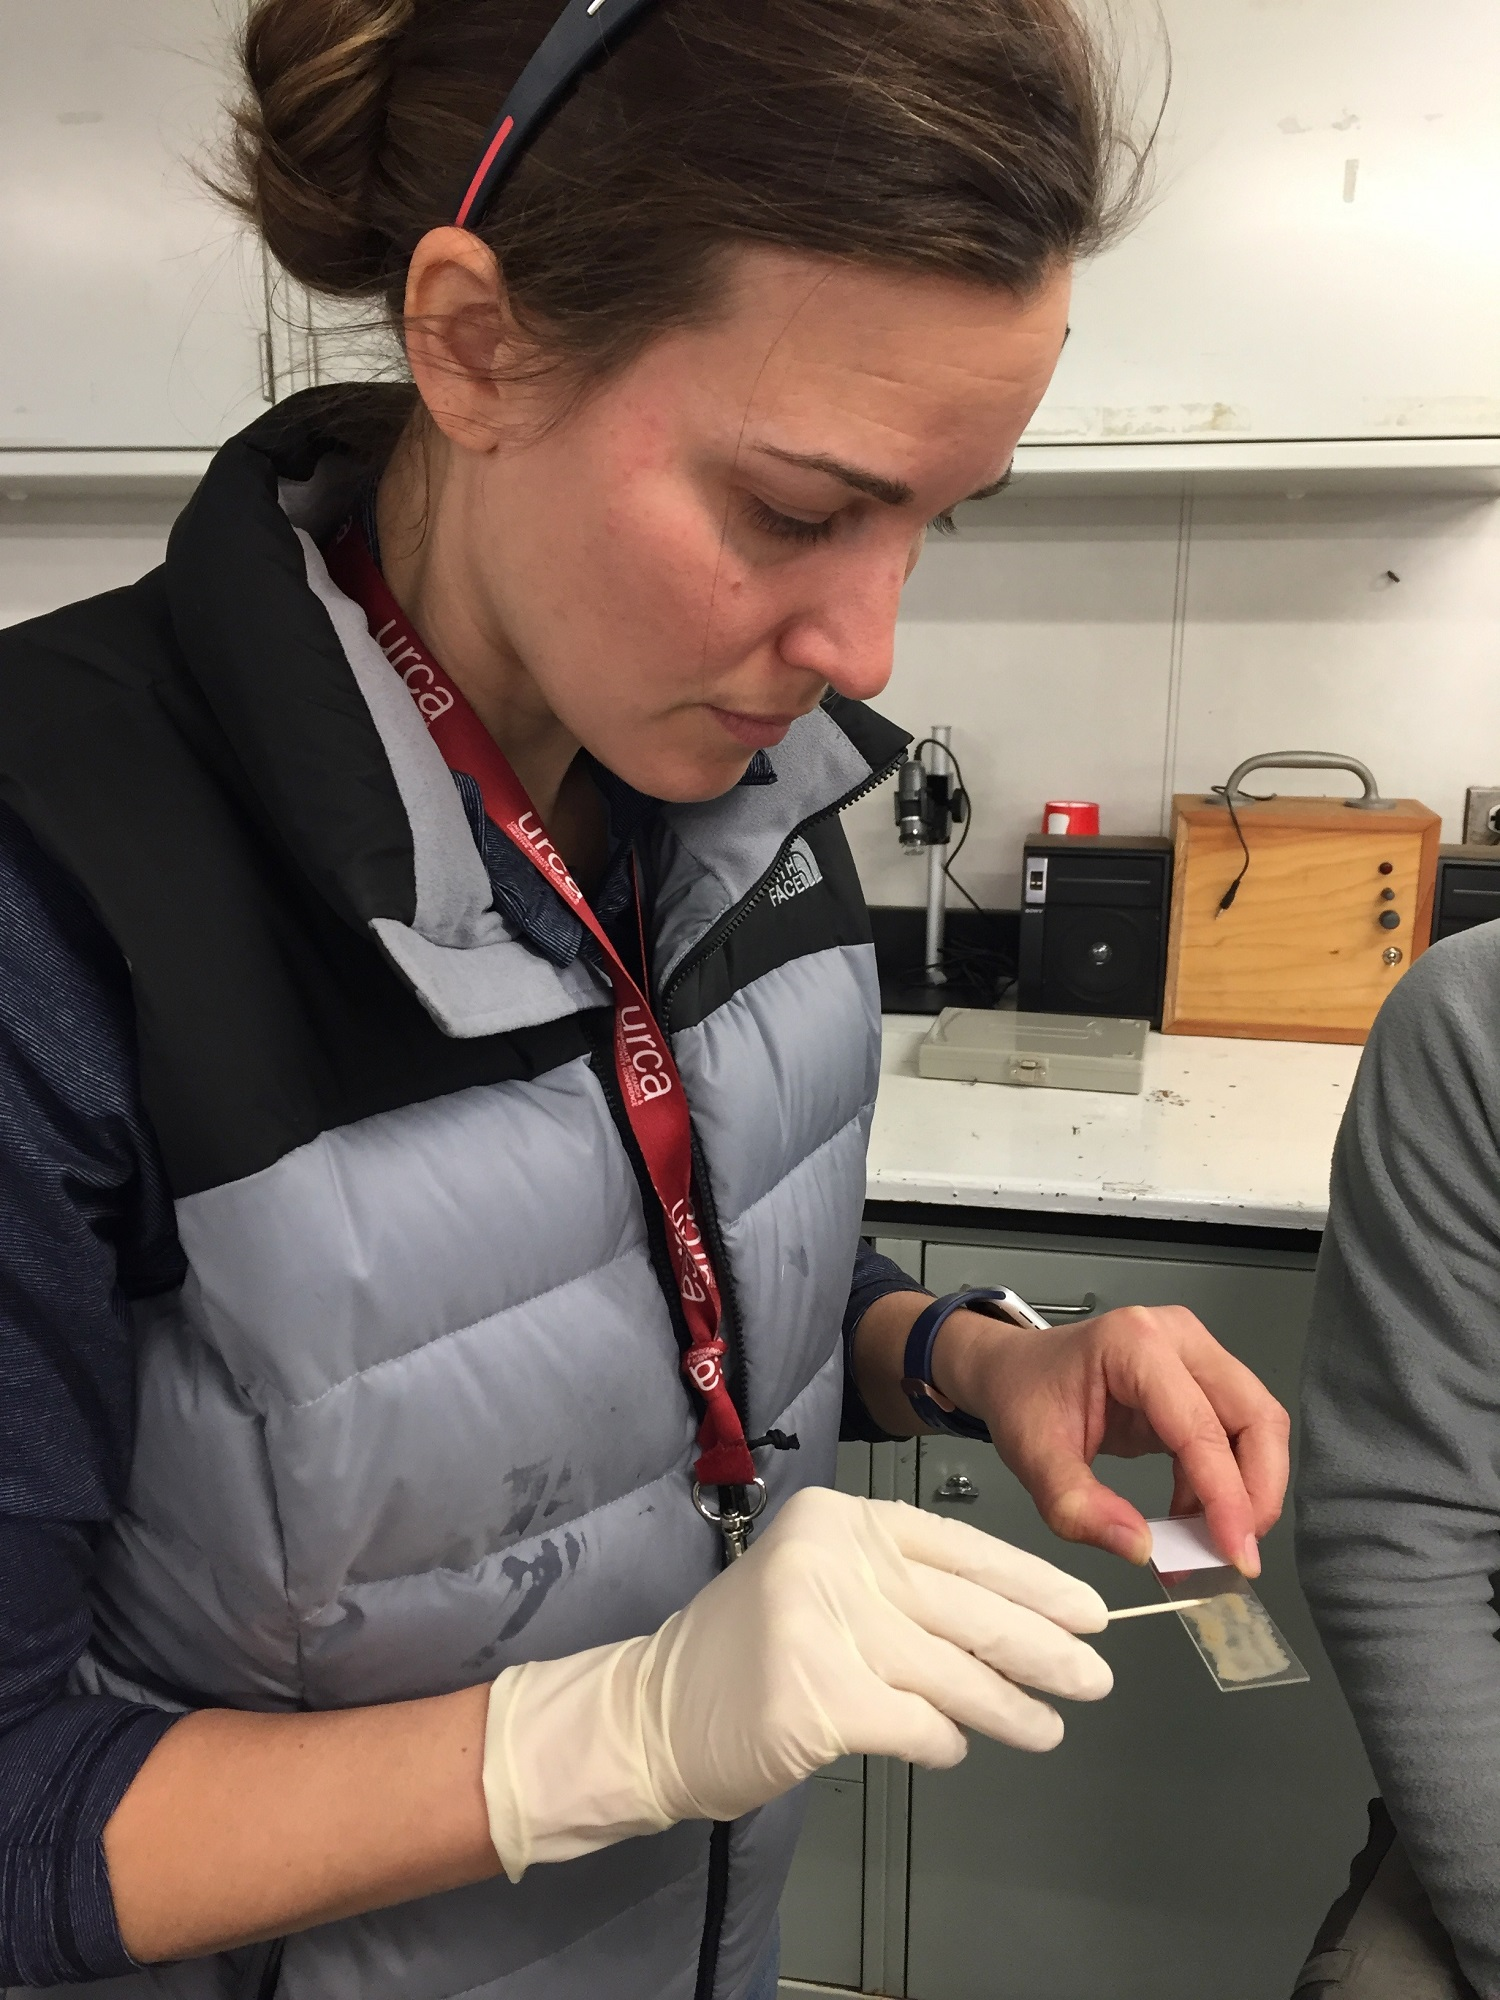 Becky Minzoni demonstrates how to make a smear slide. Smear slides allow scientists to look at diatoms (microalgae that live near the surface of the ocean).